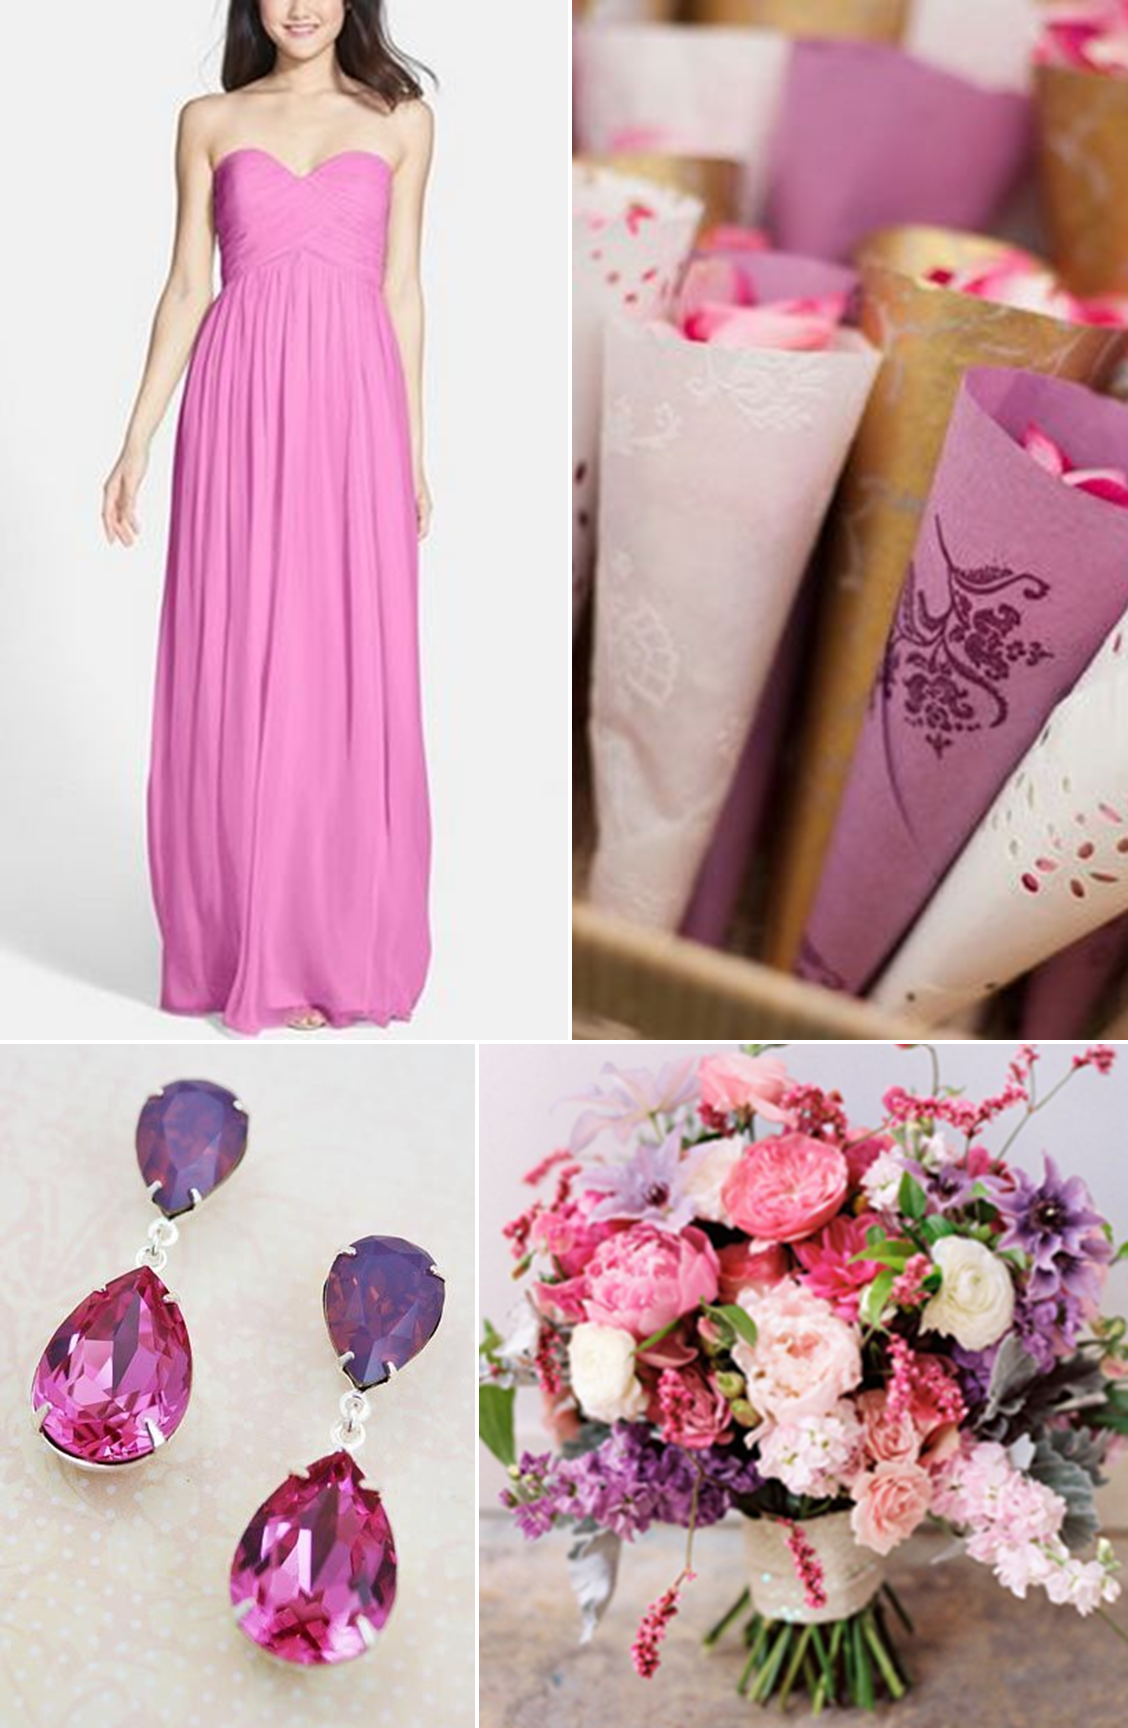 Hues You'll Heart: Bridesmaid Dress Edition - Pretty in Pink http://www.theperfectpalette.com/2014/07/hues-youll-heart-bridesmaid-dress.html